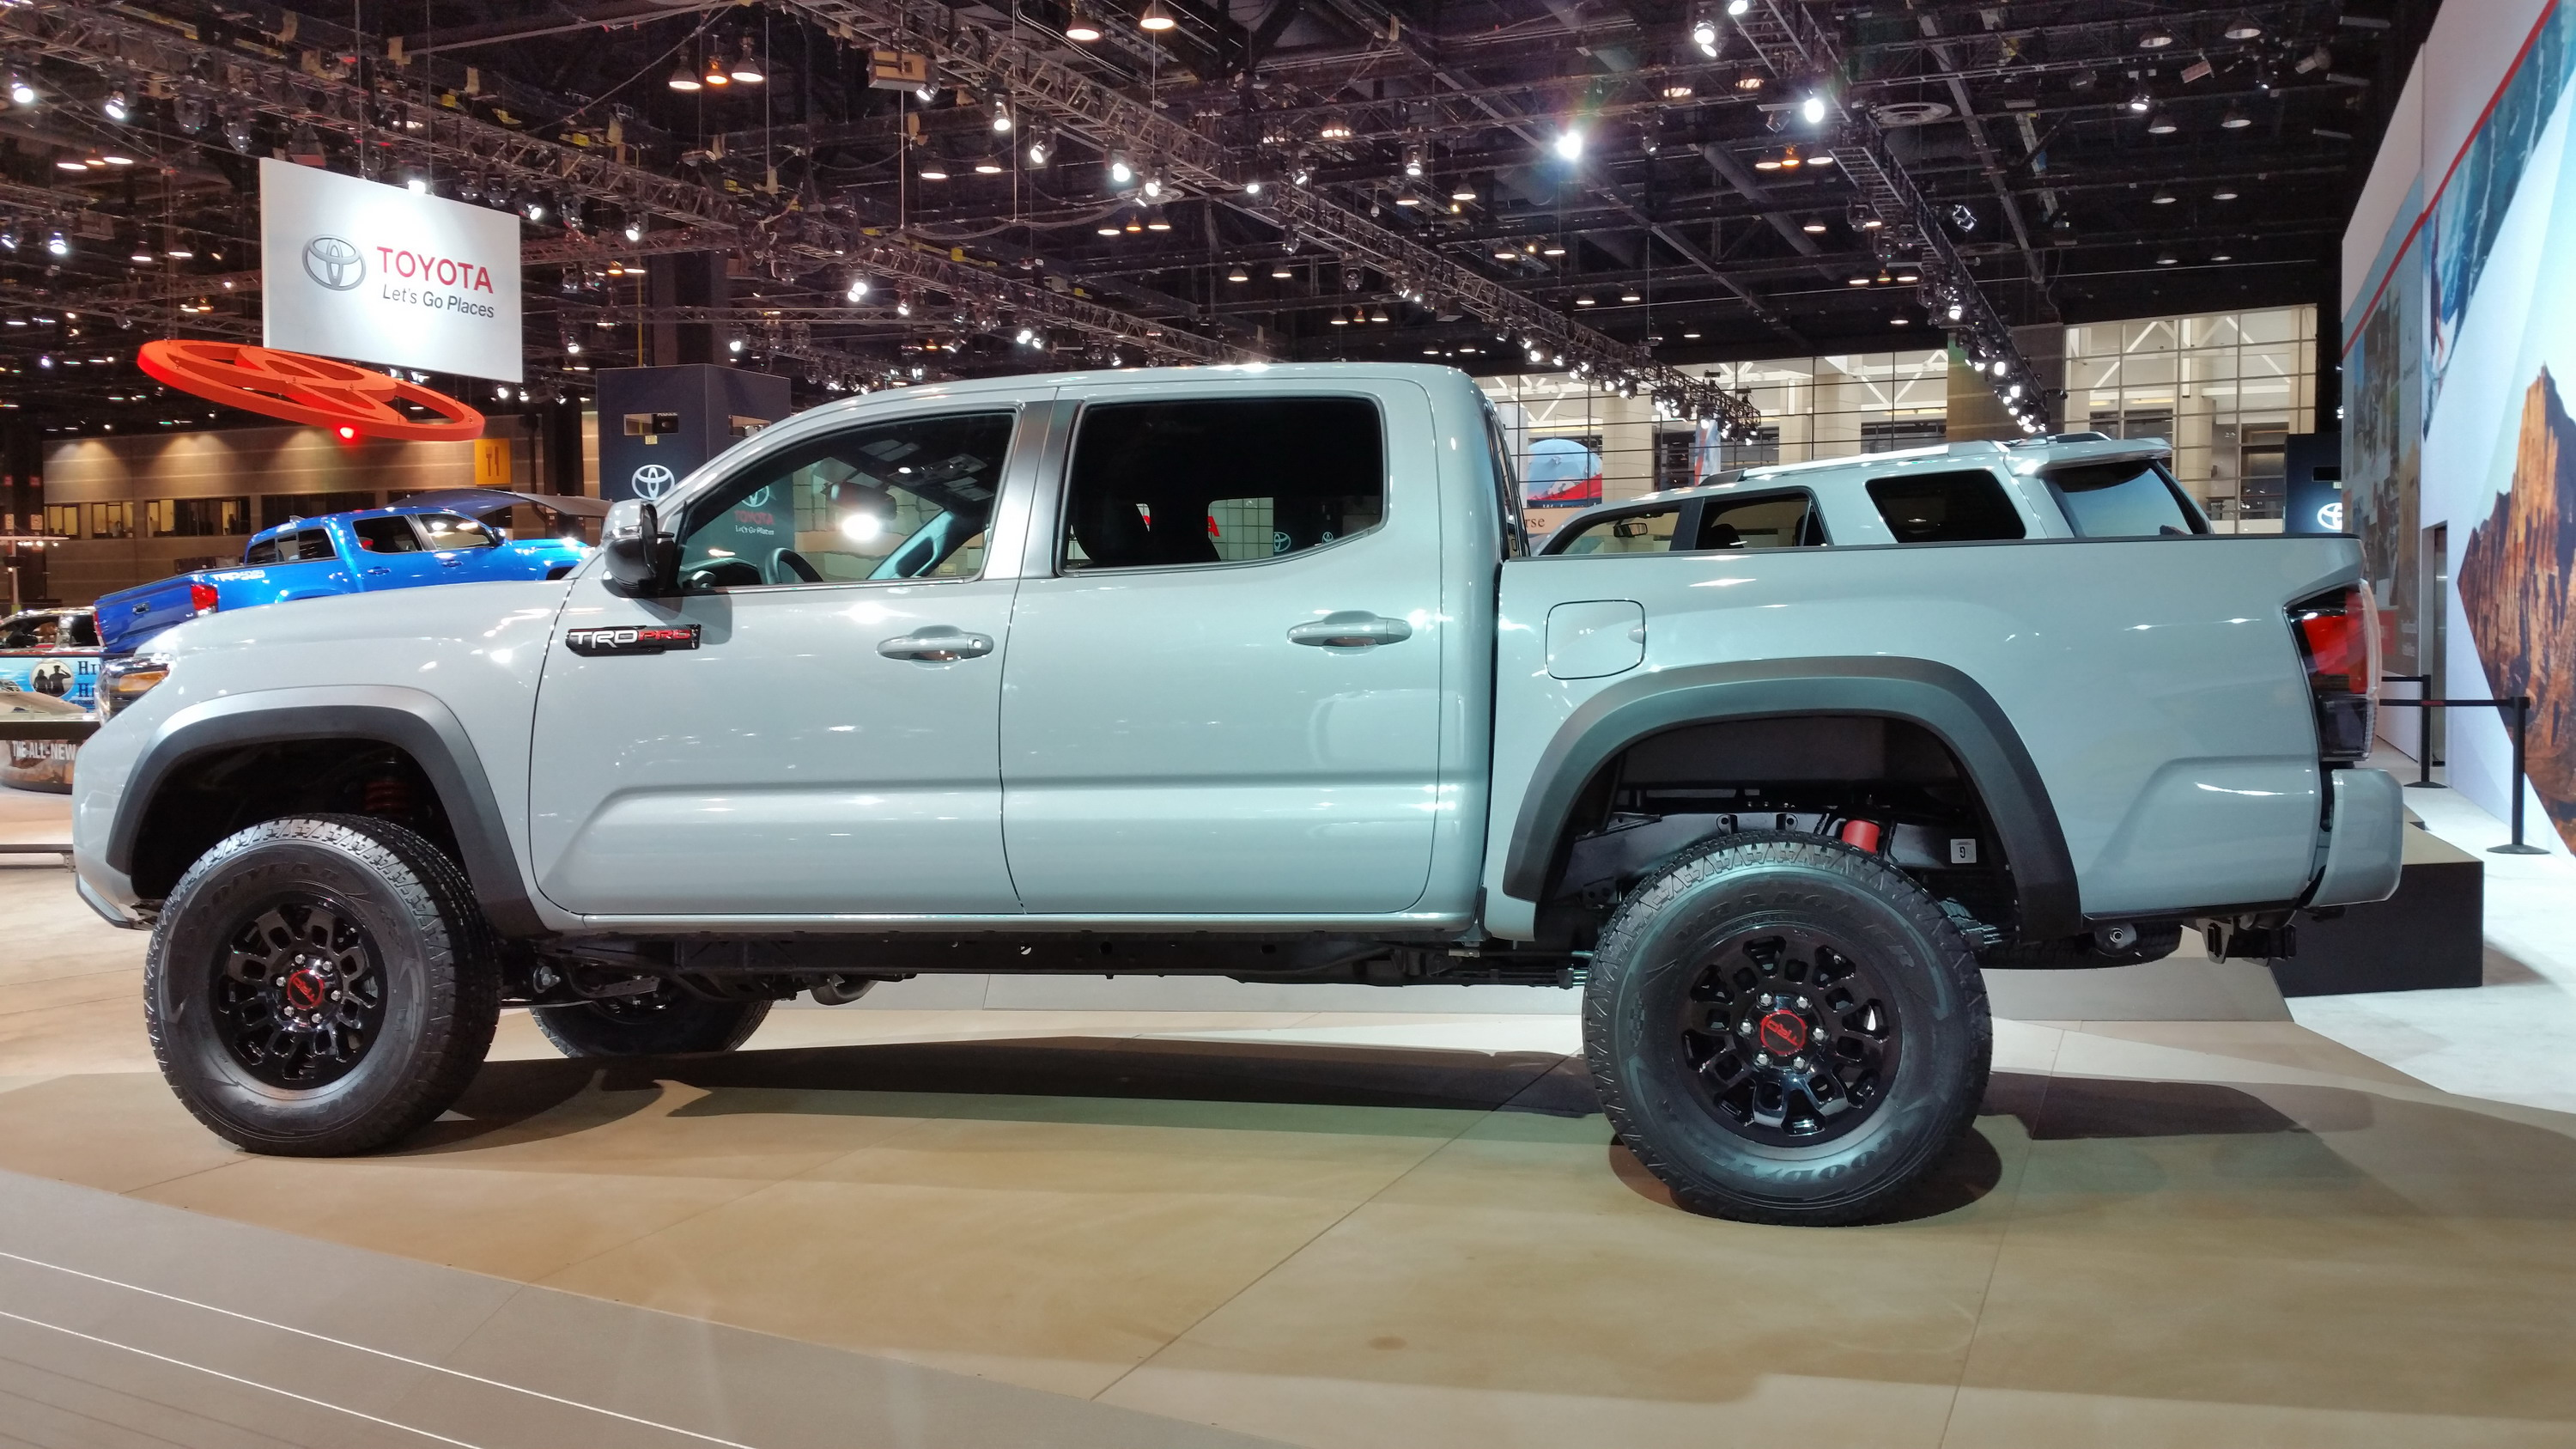 2017 toyota tacoma trd pro picture 666061 truck review top speed. Black Bedroom Furniture Sets. Home Design Ideas